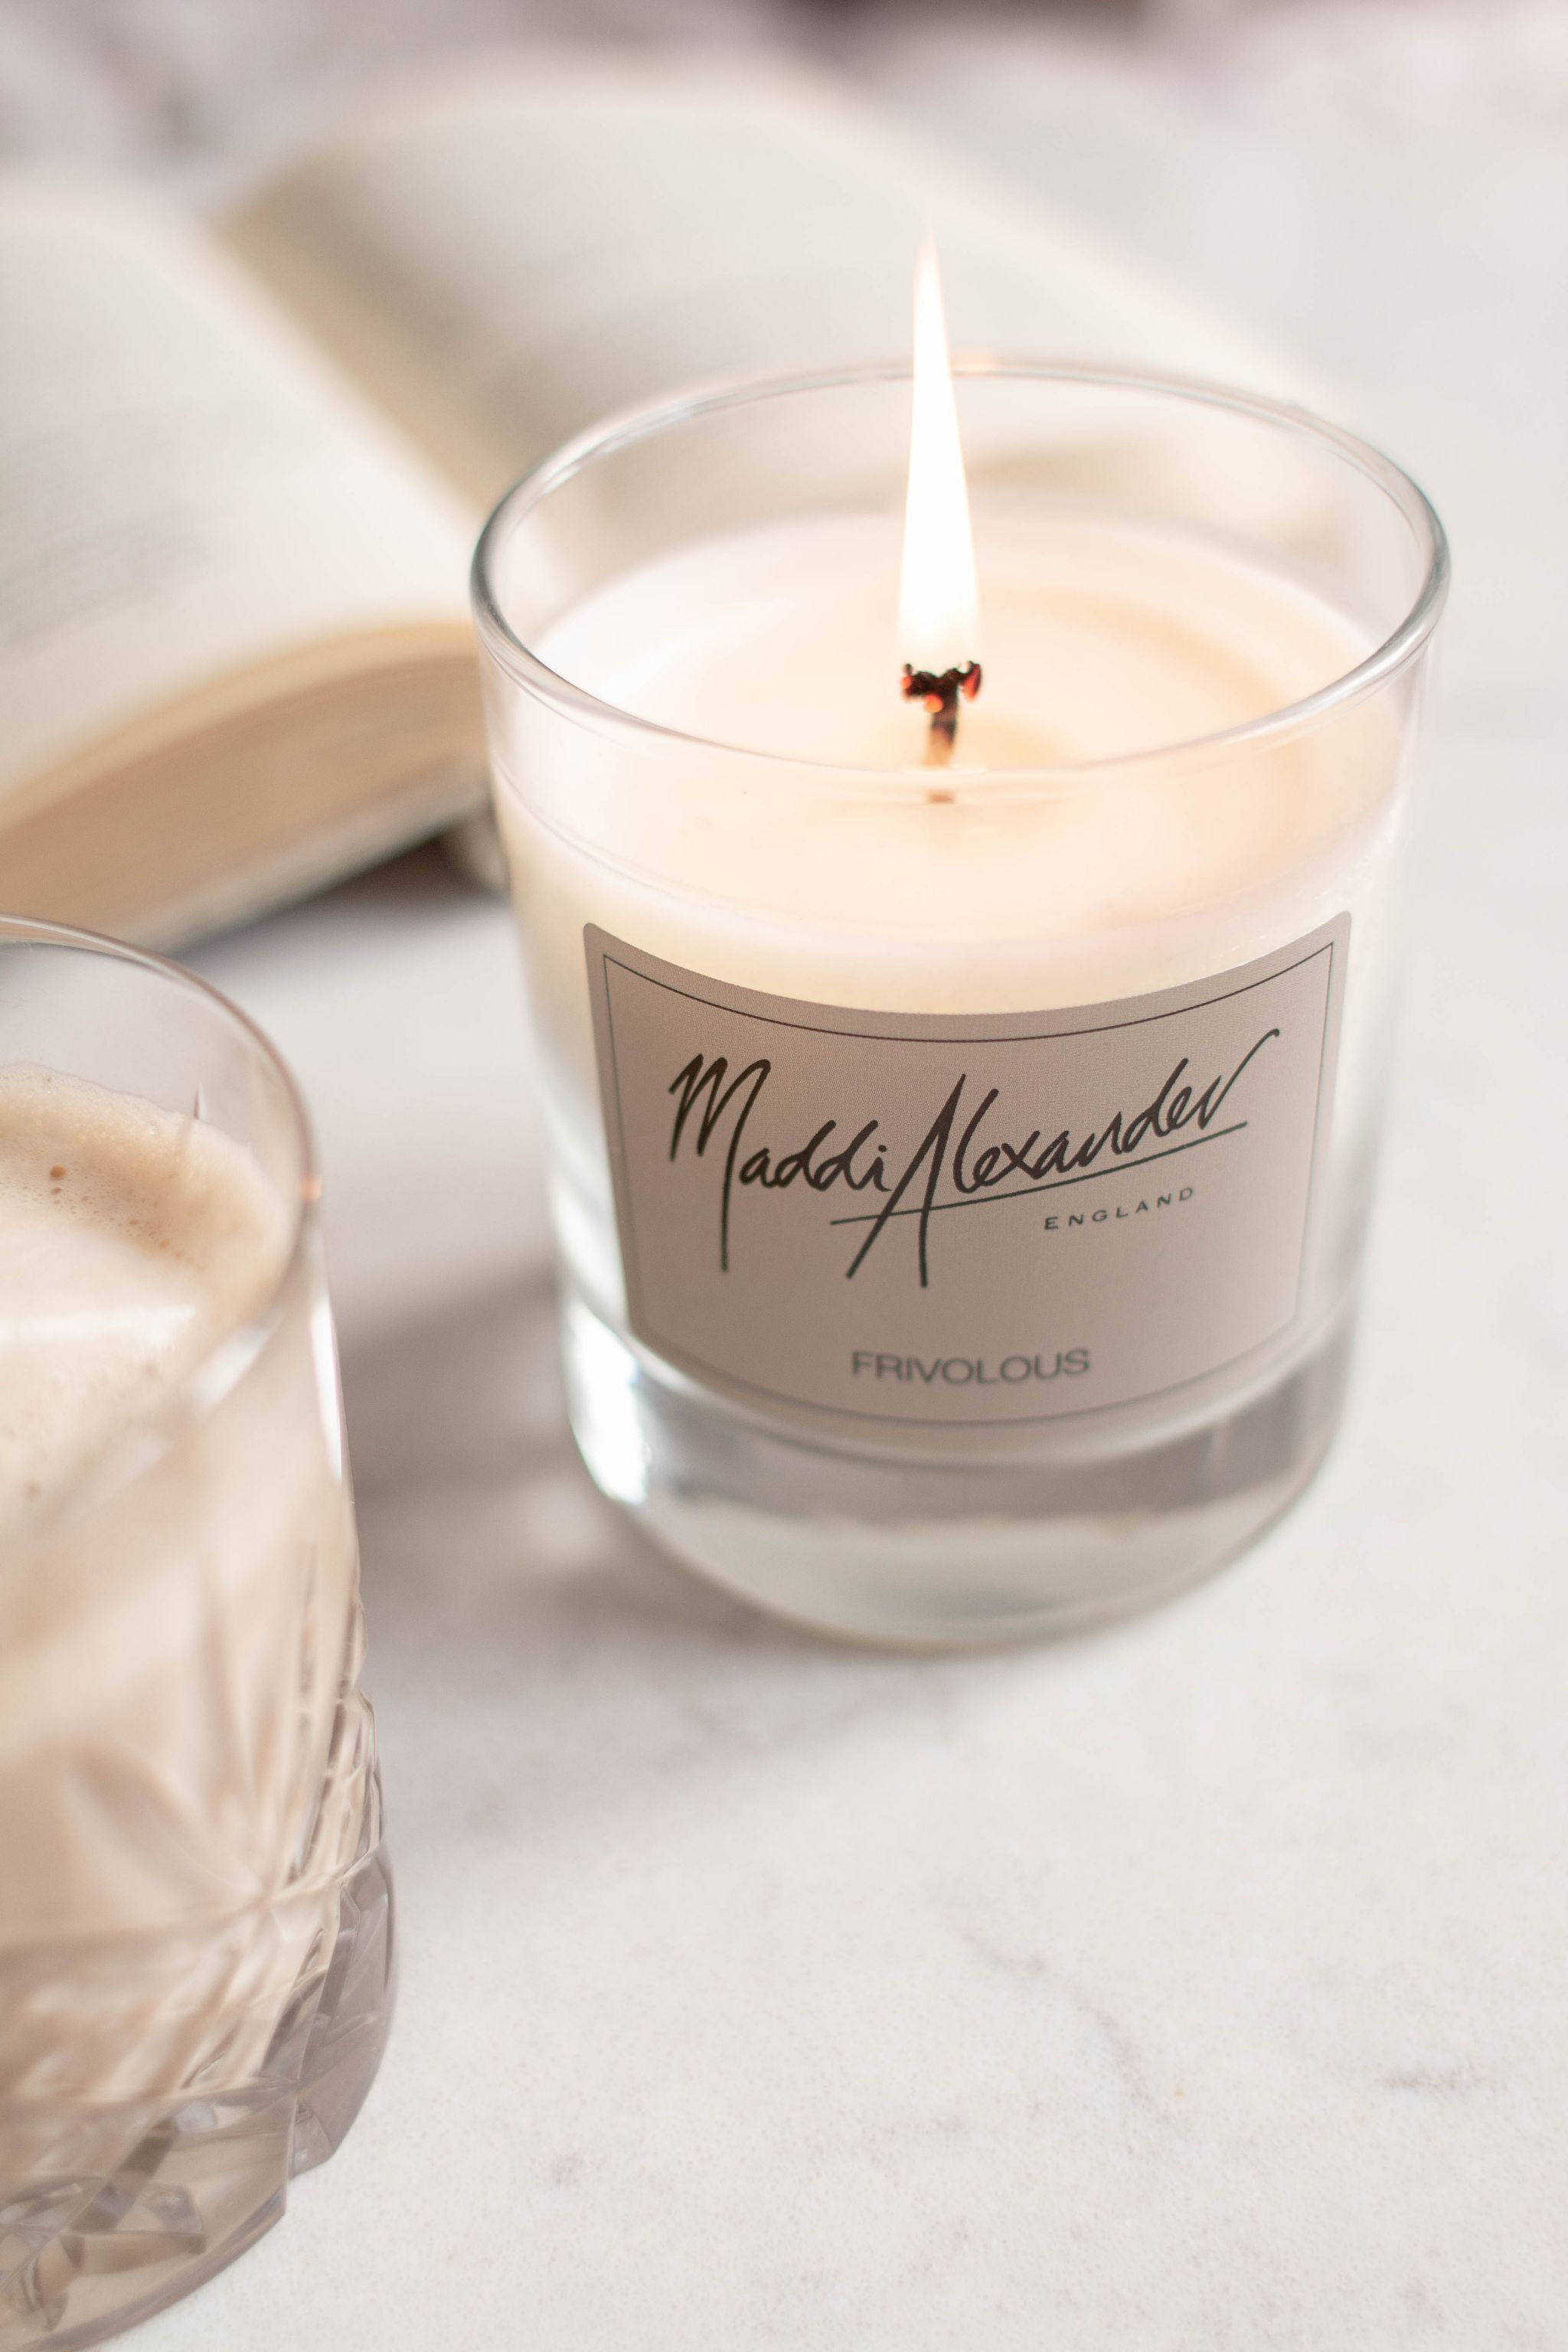 Maddi Alexander Social Media Photography Lifestyle Content Creation evocative candle